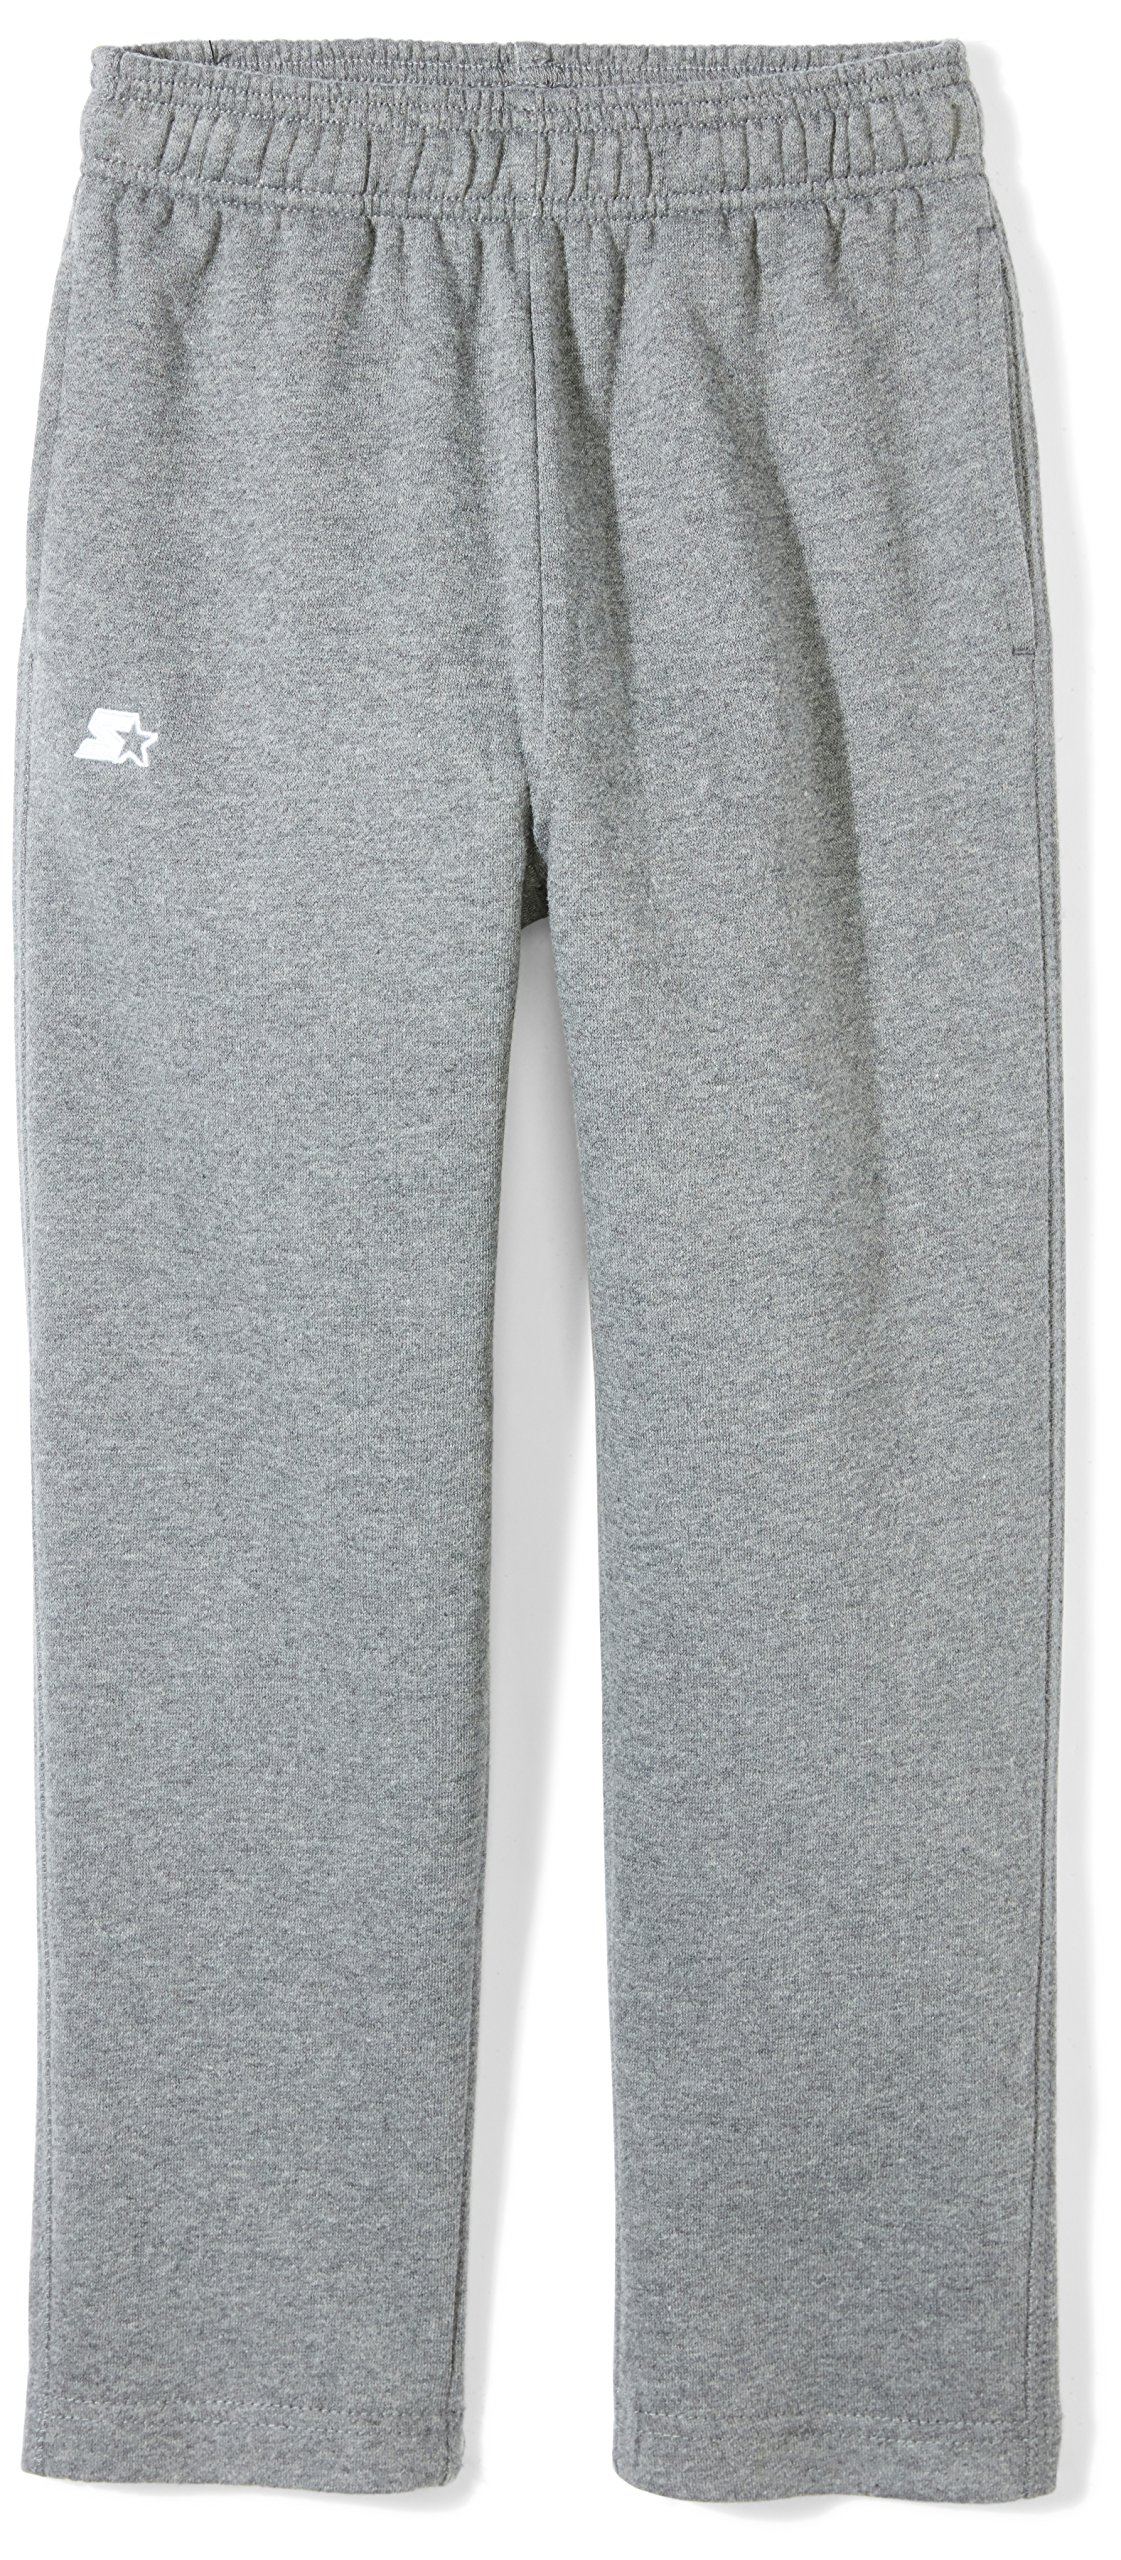 Exclusive Starter Boys Jogger Sweatpants with Pockets